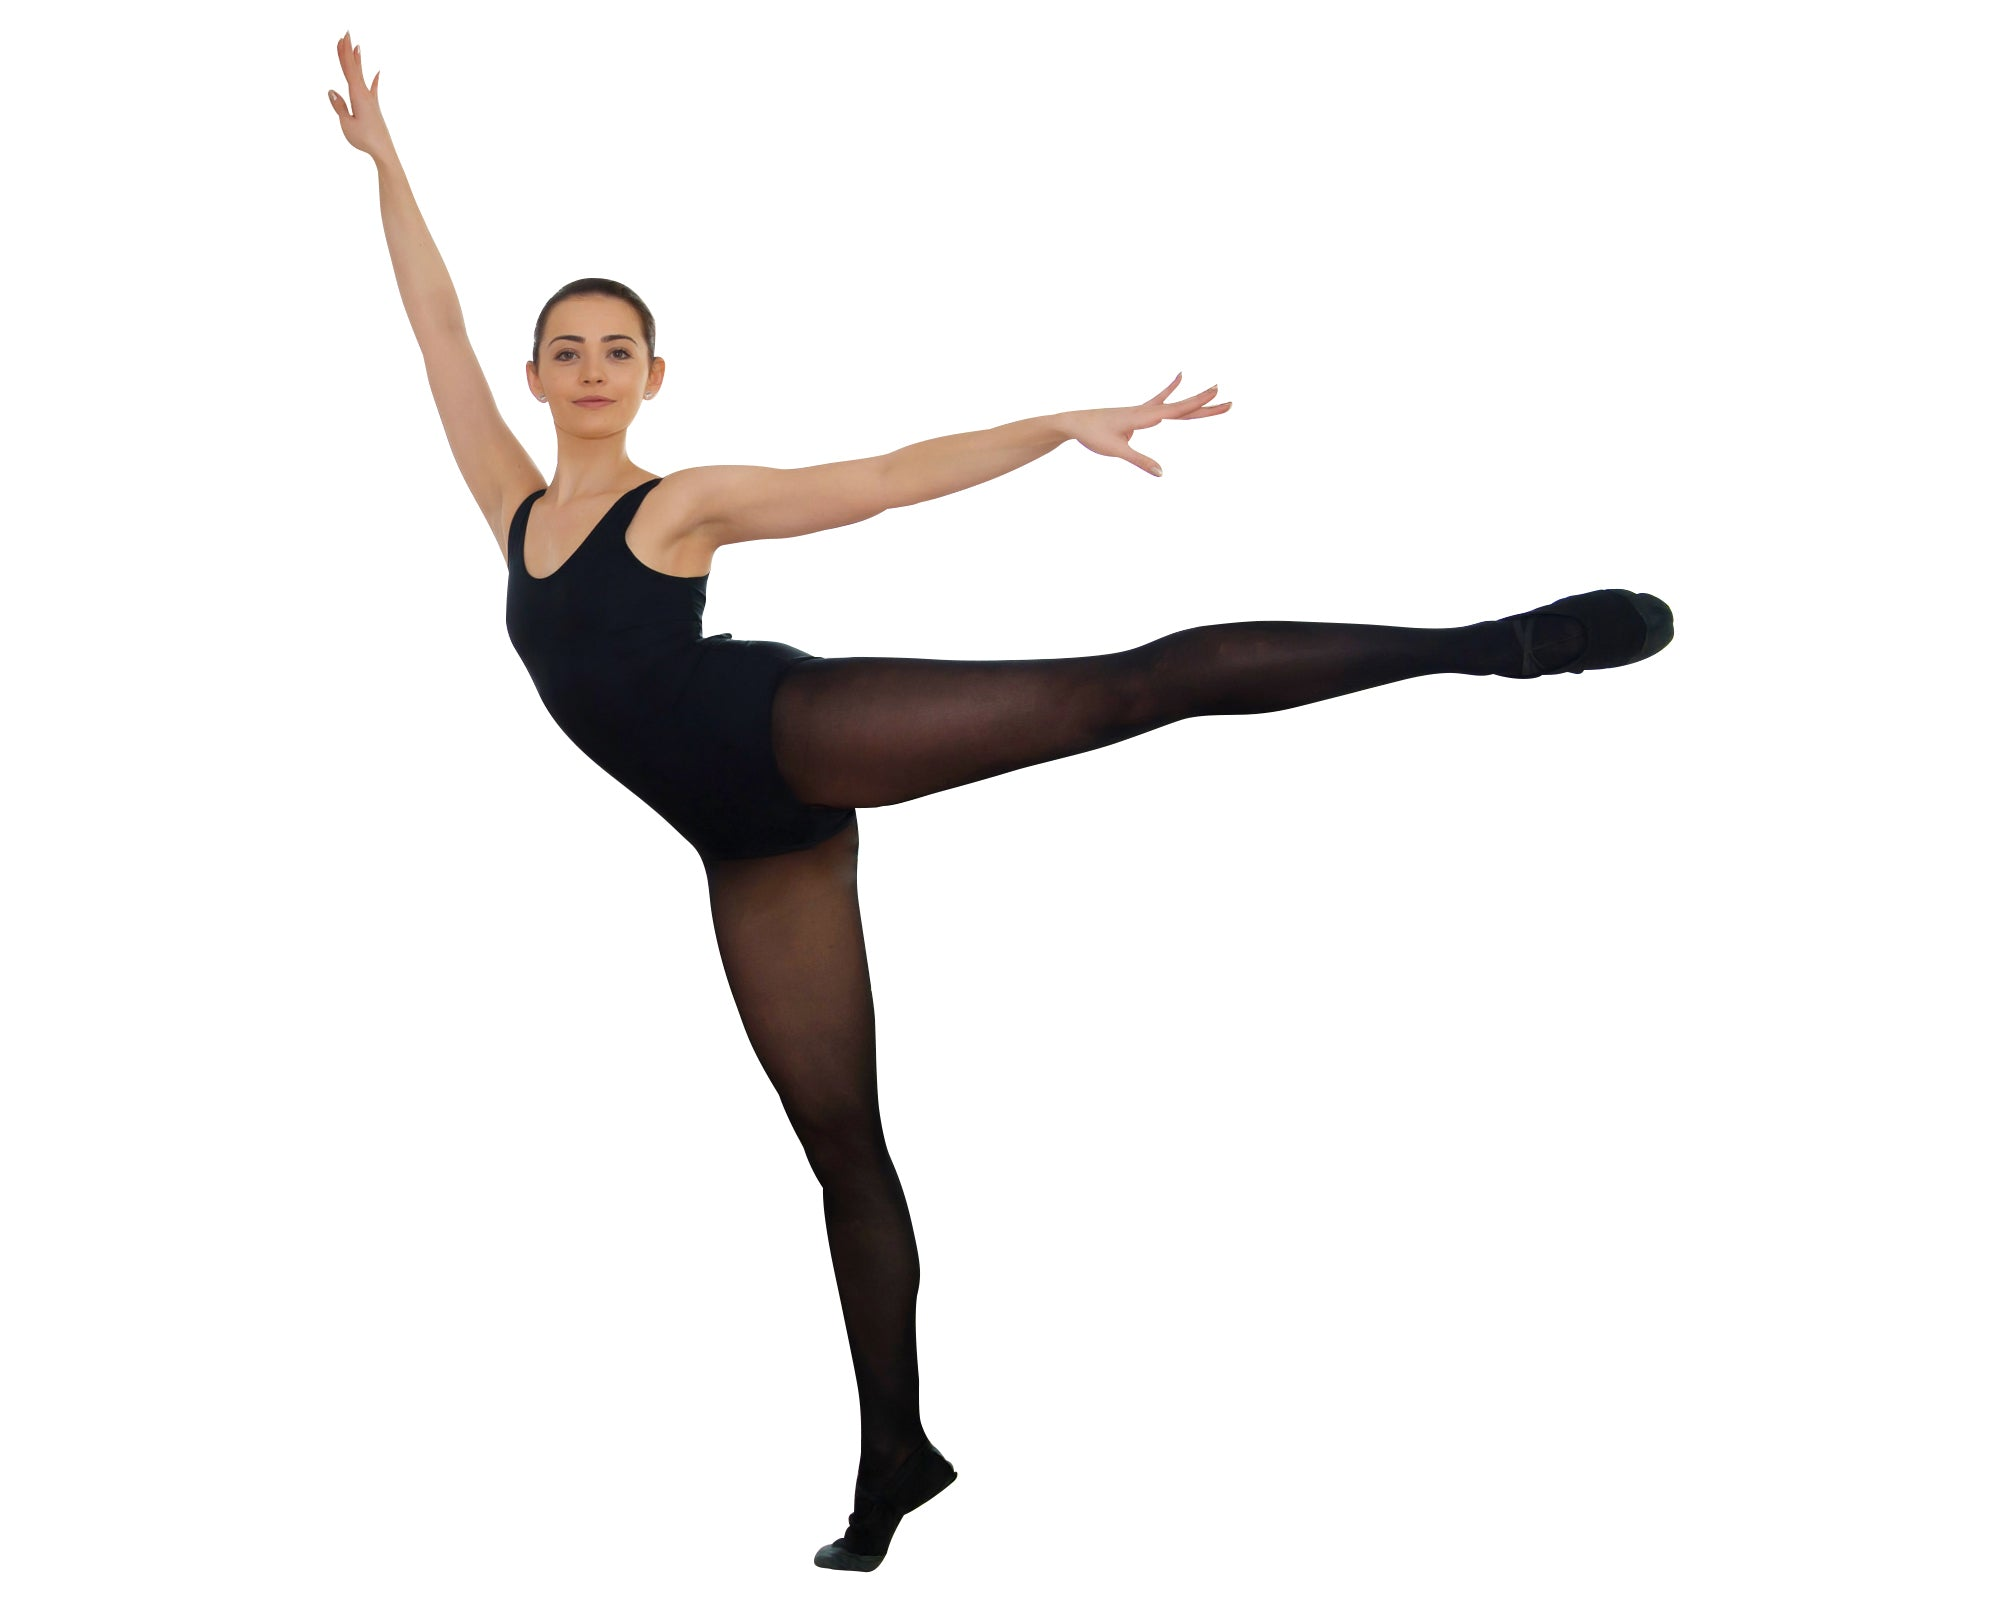 How to Stretch for Ballet - Preparing Yourself and Stretching Muscles